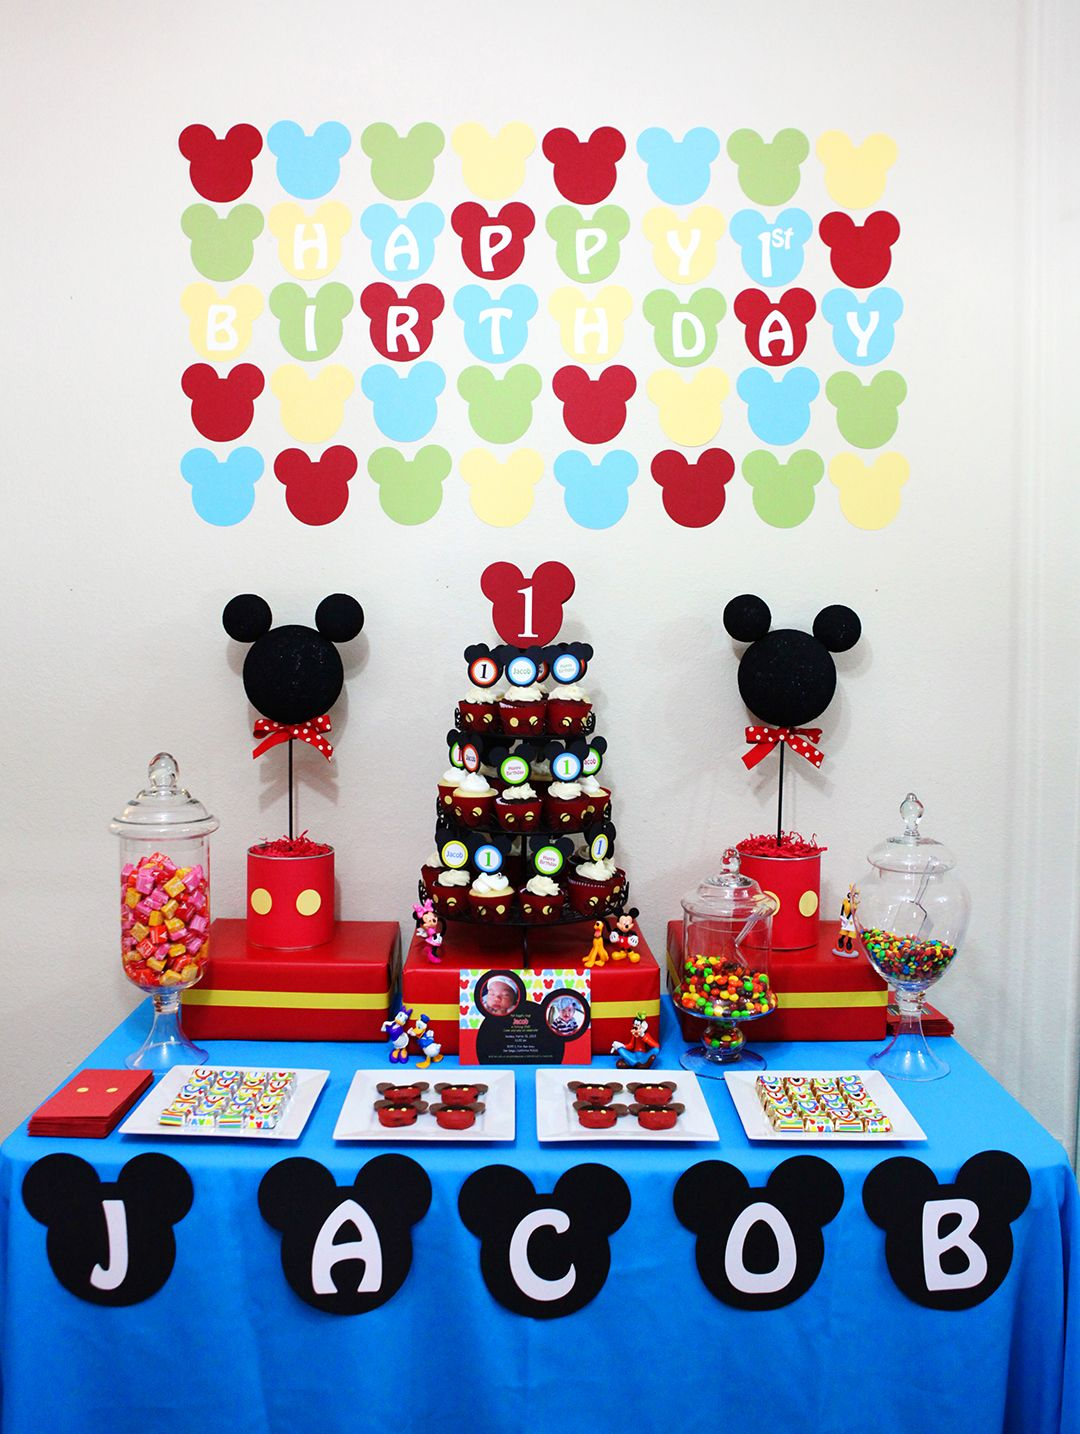 Mickey mouse party ideas birthday party pinterest mickey mouse check out this cute mickey mouse themed birthday party we created for jacob first birthday we mainly used the ideas of the mickey mo solutioingenieria Images